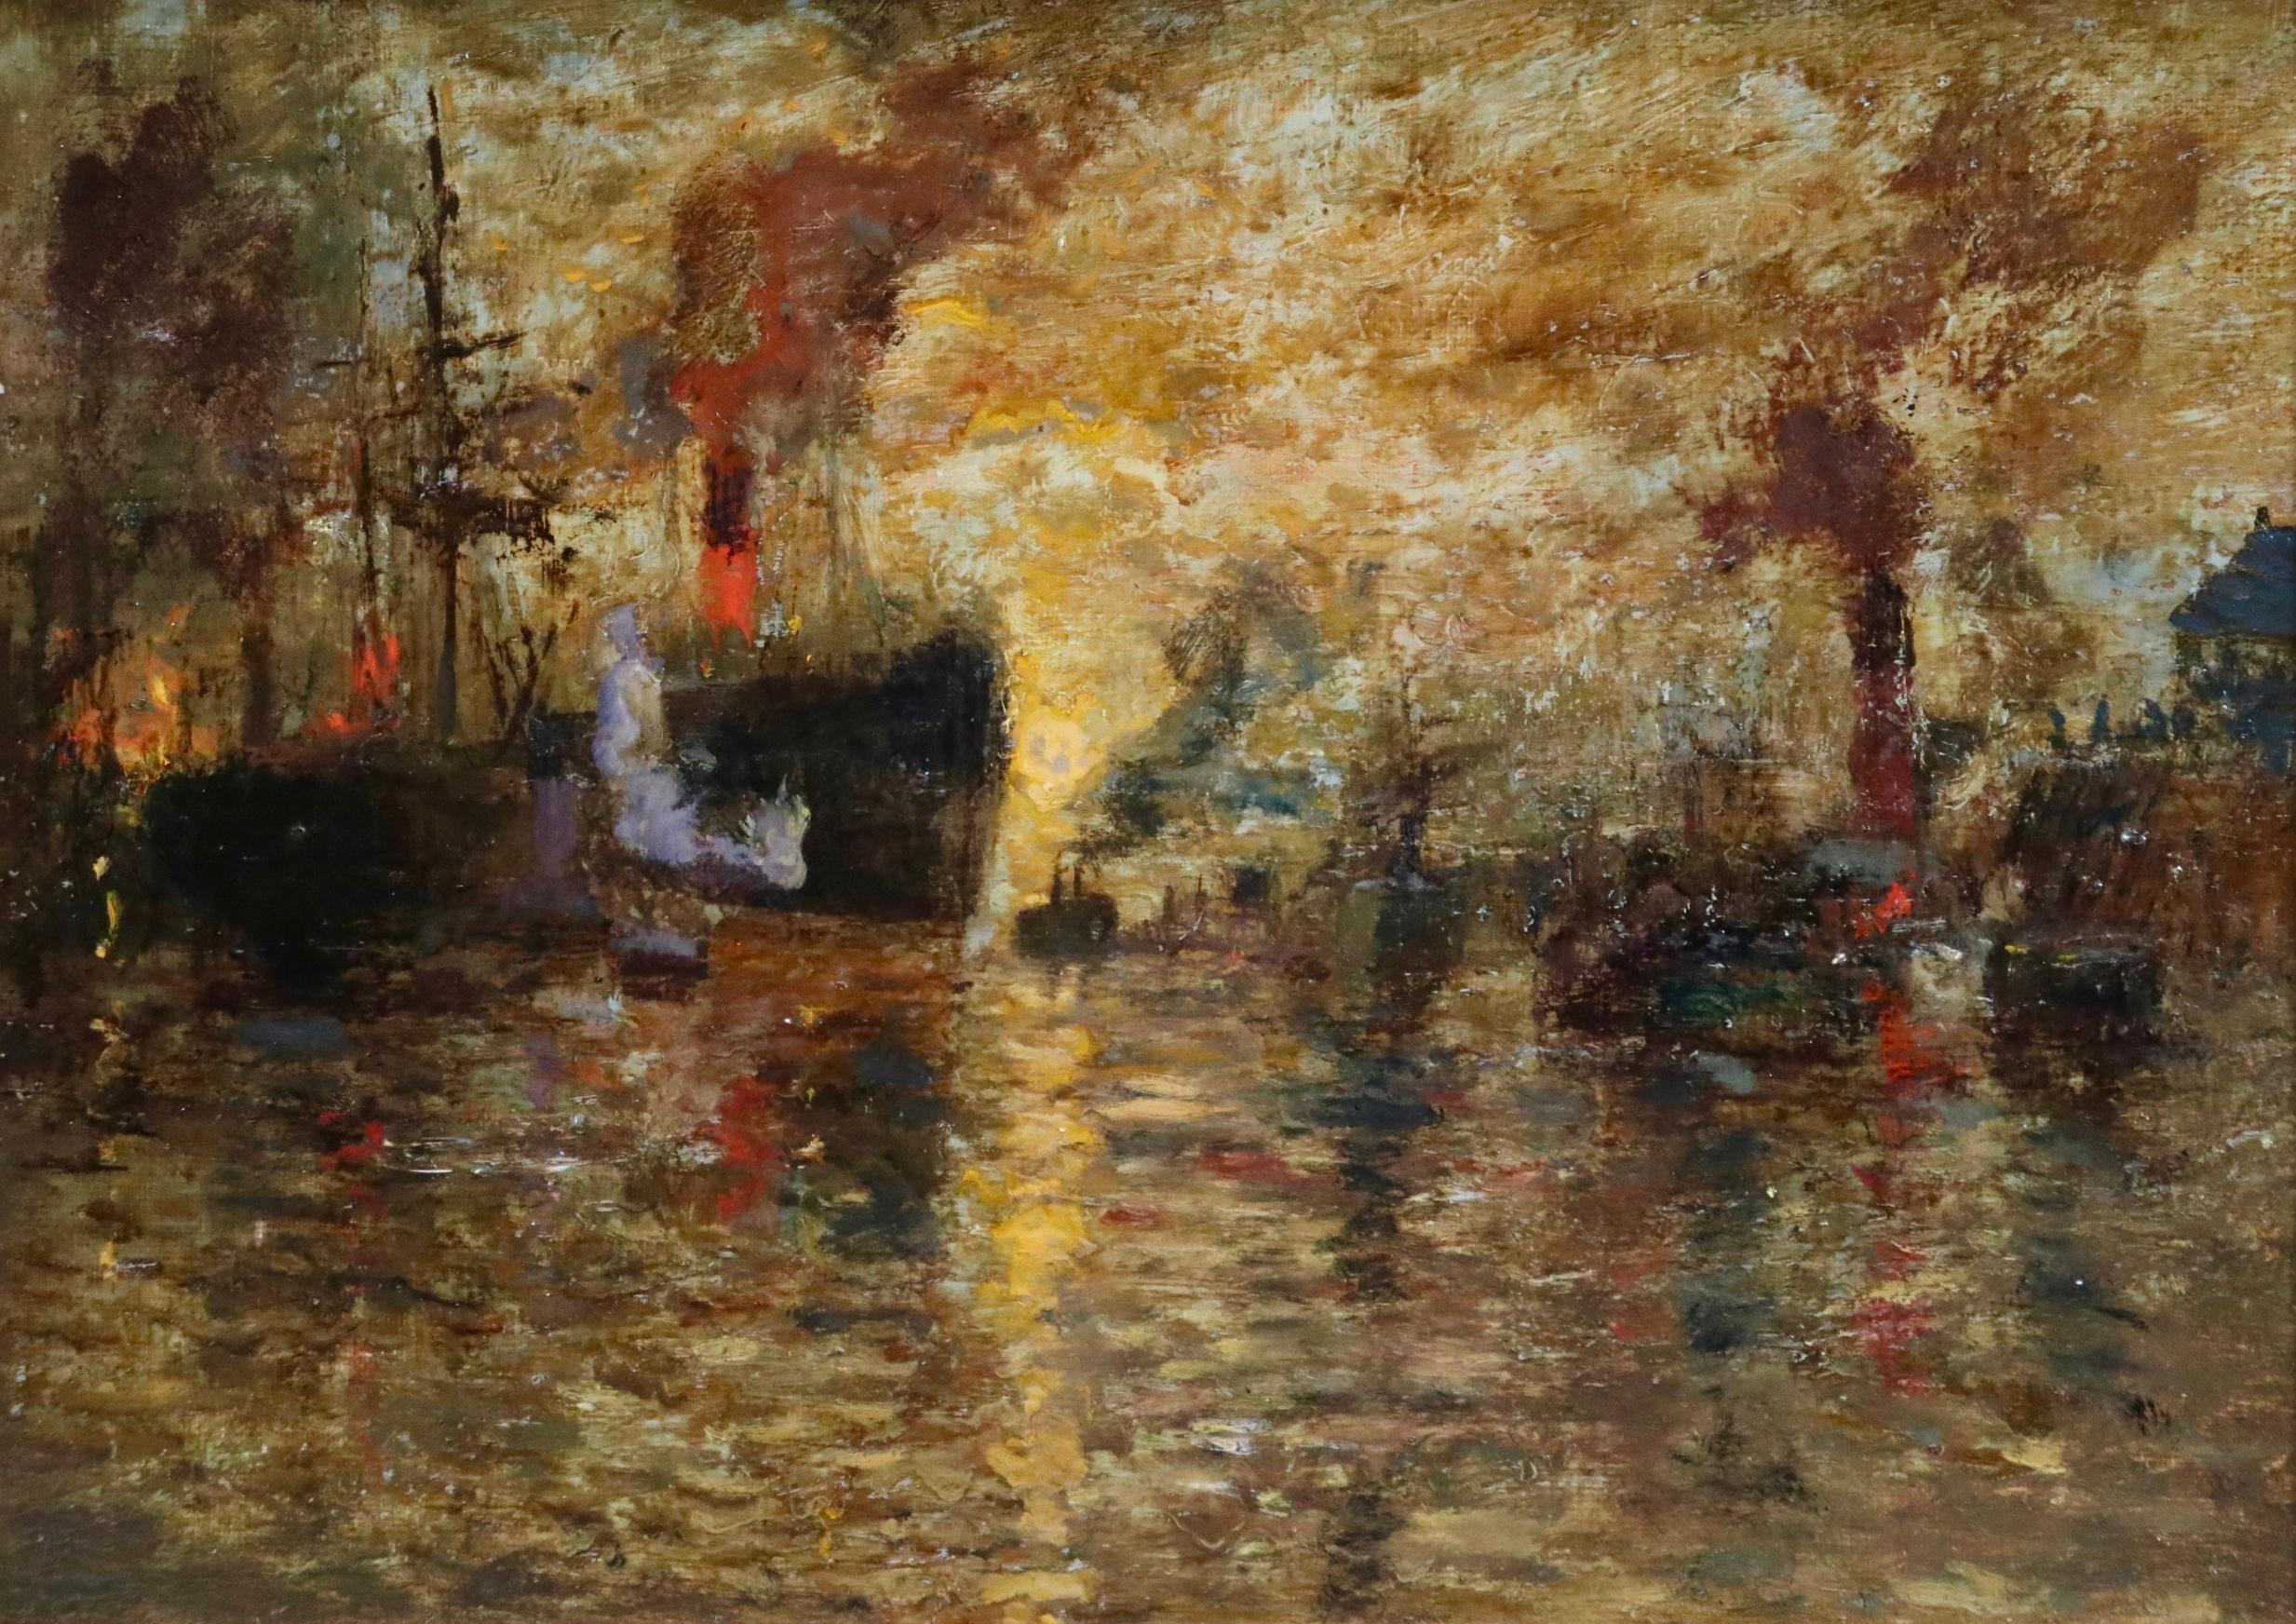 Steamers on the Clyde - Sunset - Impressionist Oil, Boats on River by James Kay